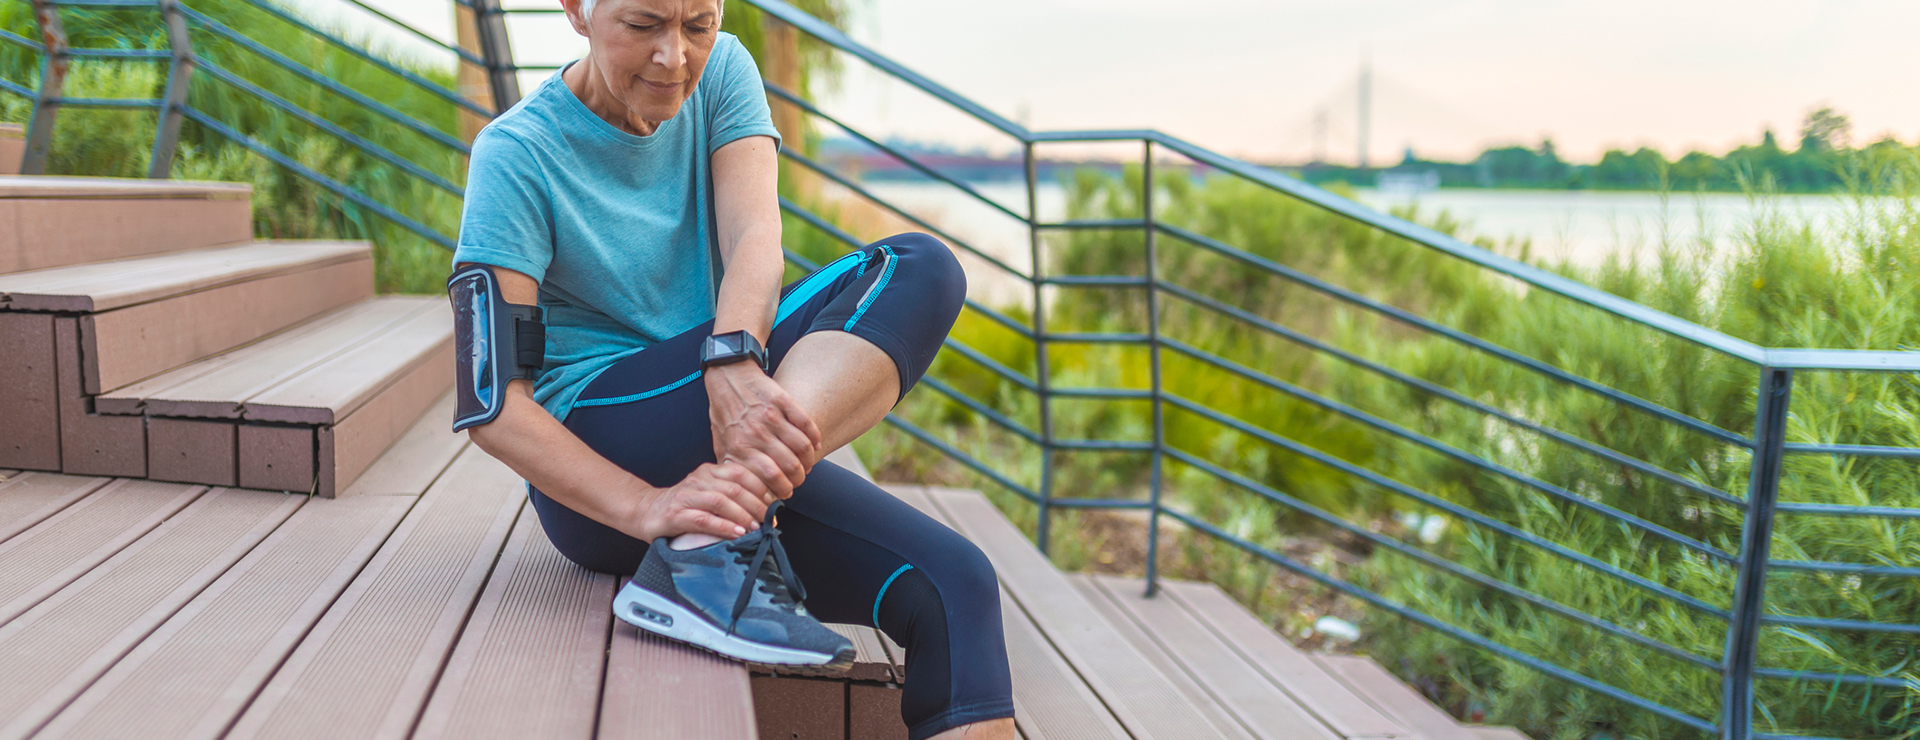 older women experiencing ankle pain